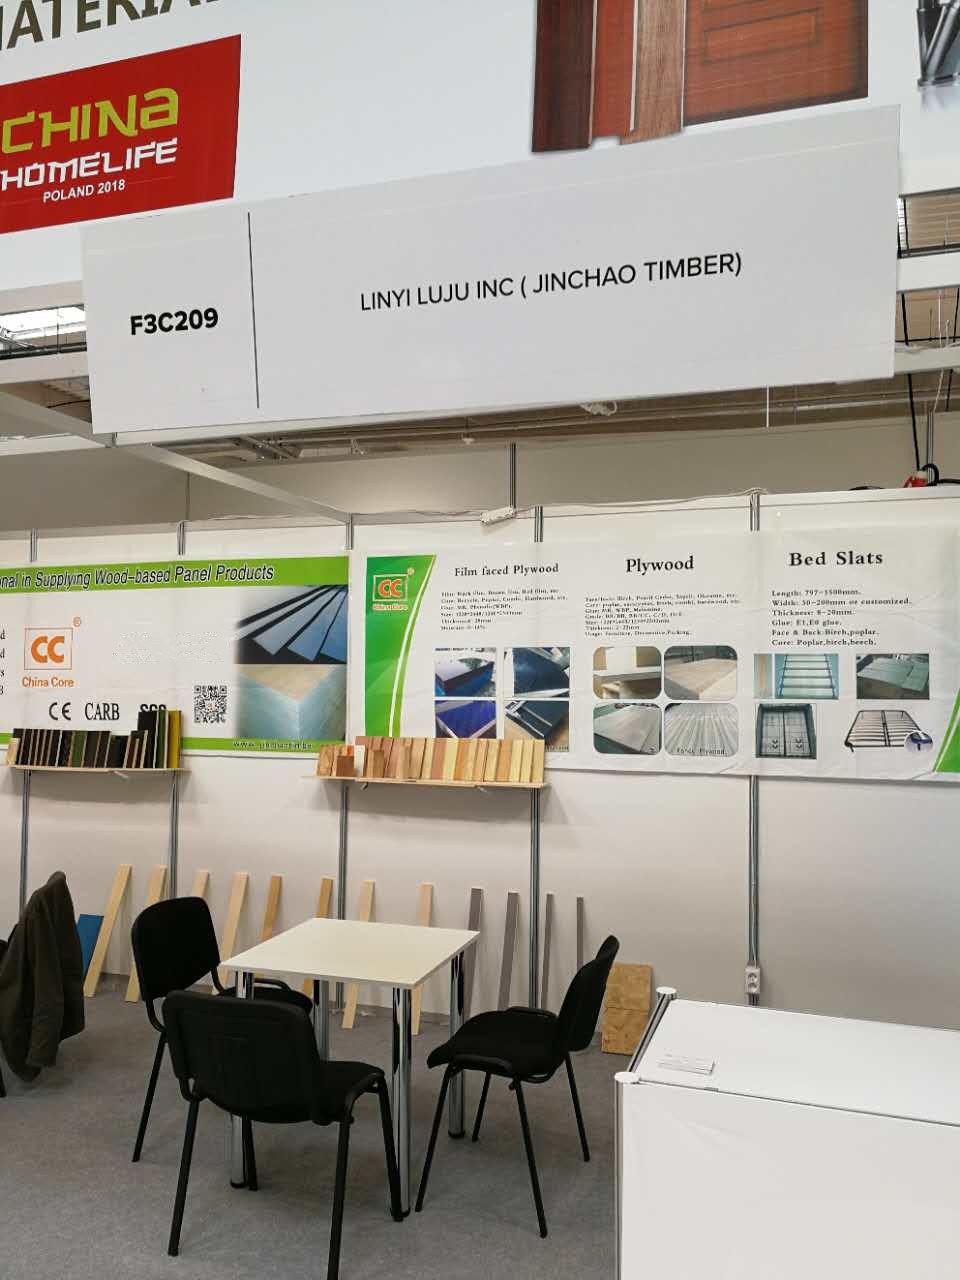 Attend the Warsaw International Expocentre EXPO in Poland